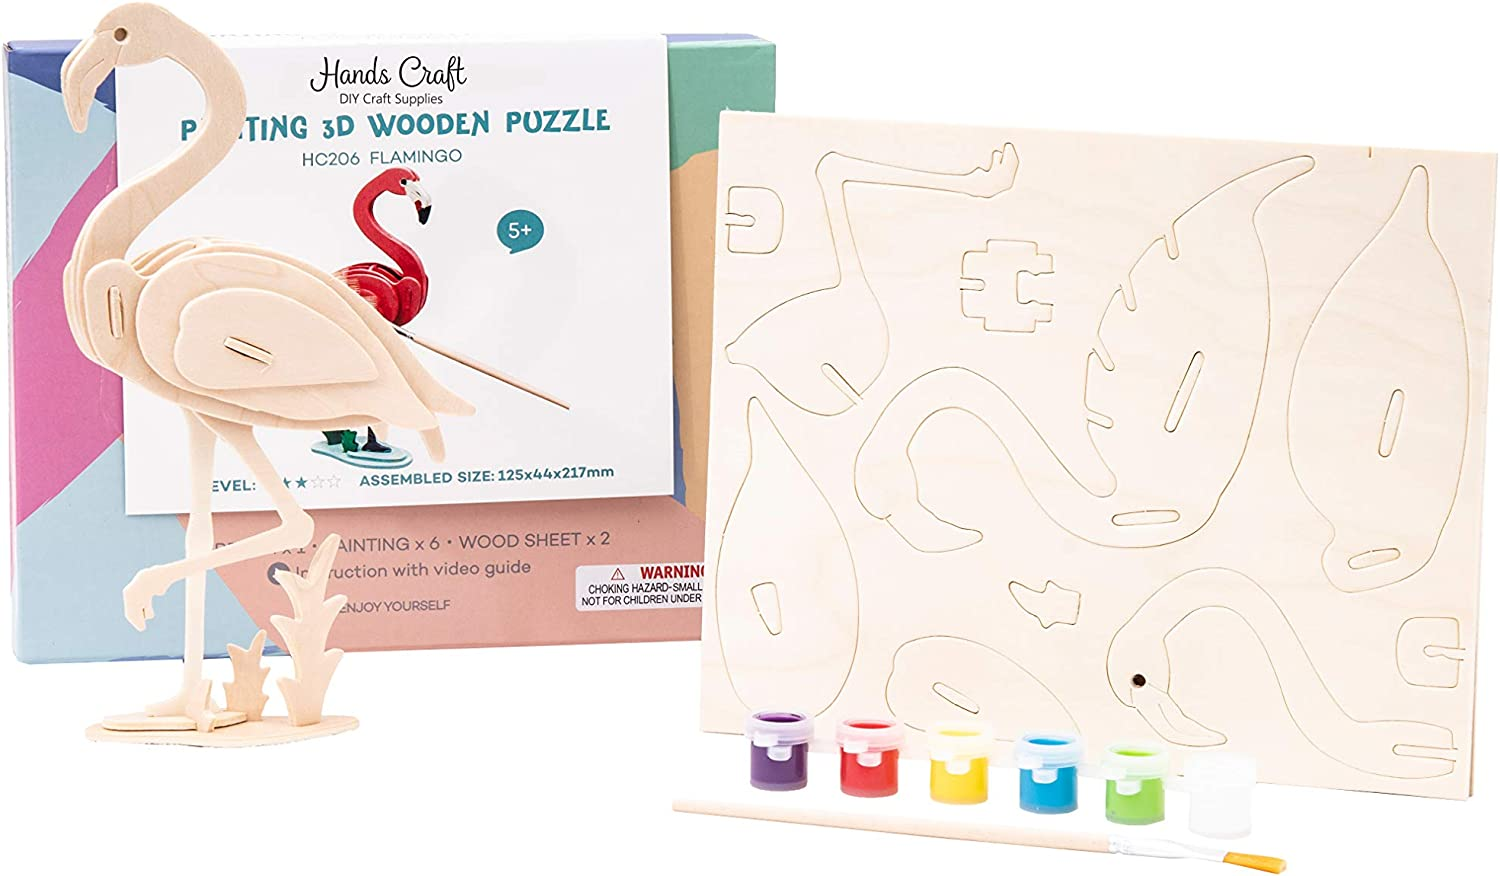 Flamingo Hands Craft DIY Wooden Puzzle with Paint Kit